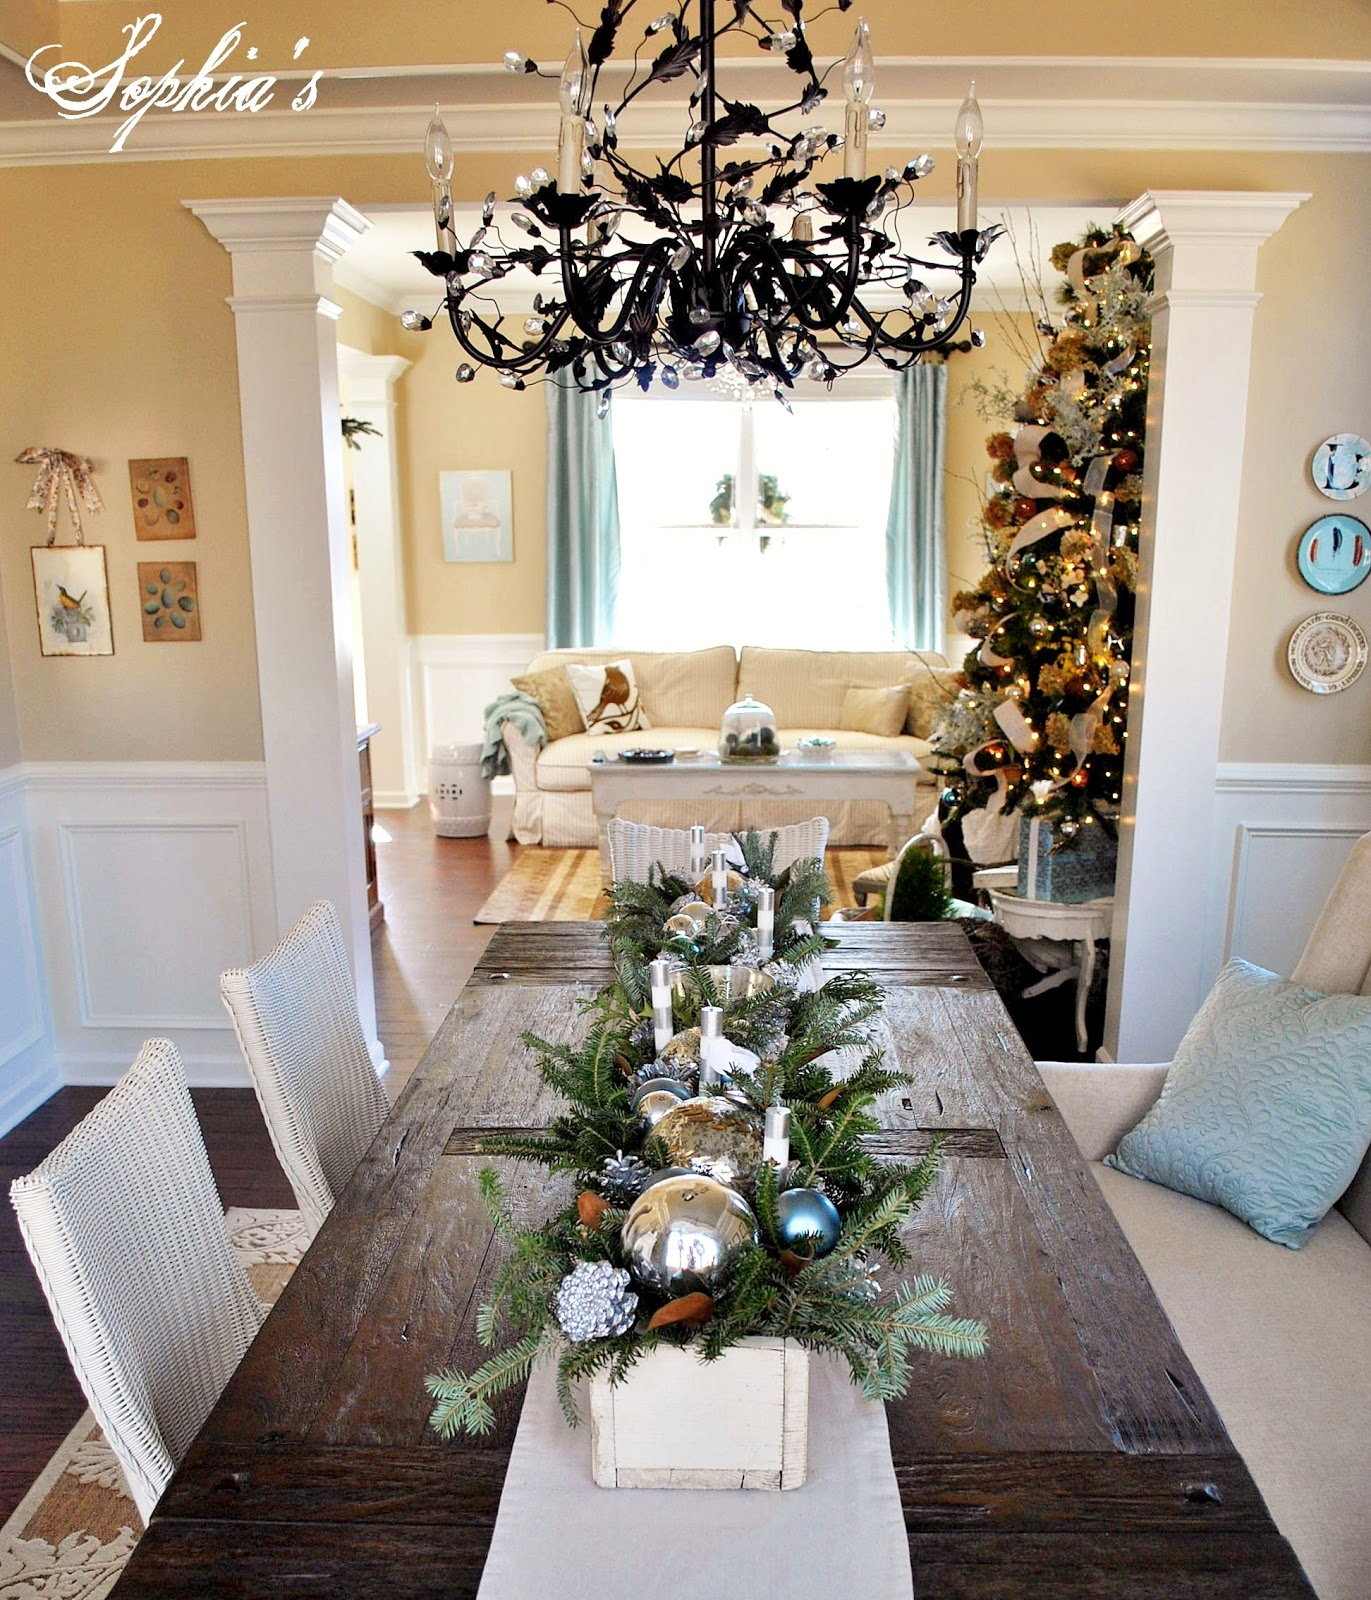 Dining Room Centerpieces: Sophia's: An Easy Christmas Centerpiece